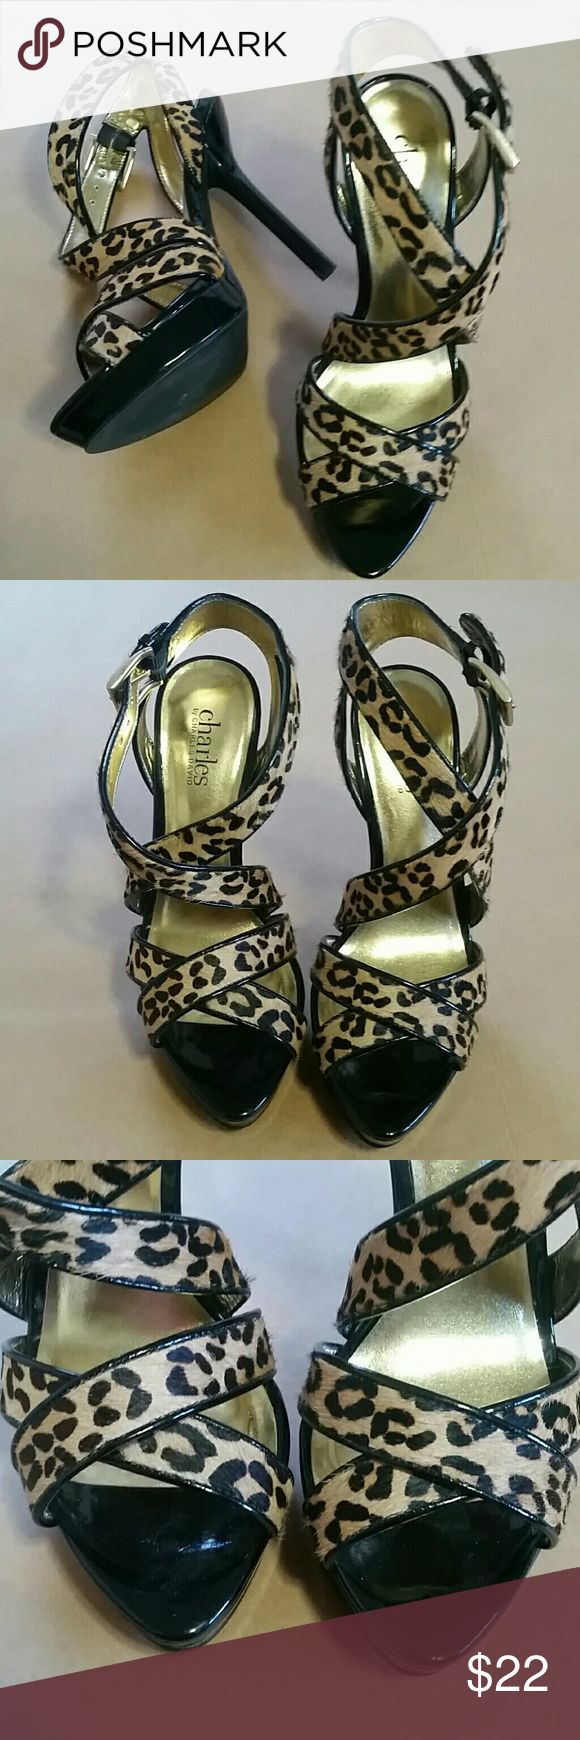 "Charles David super high heels size 6.5 Animal print strappy high heels from Charles by Charles David. Excellent used condition. A few superficial dings on heels - see photos. 5"" heel. Size 6.5. Charles David Shoes Heels"